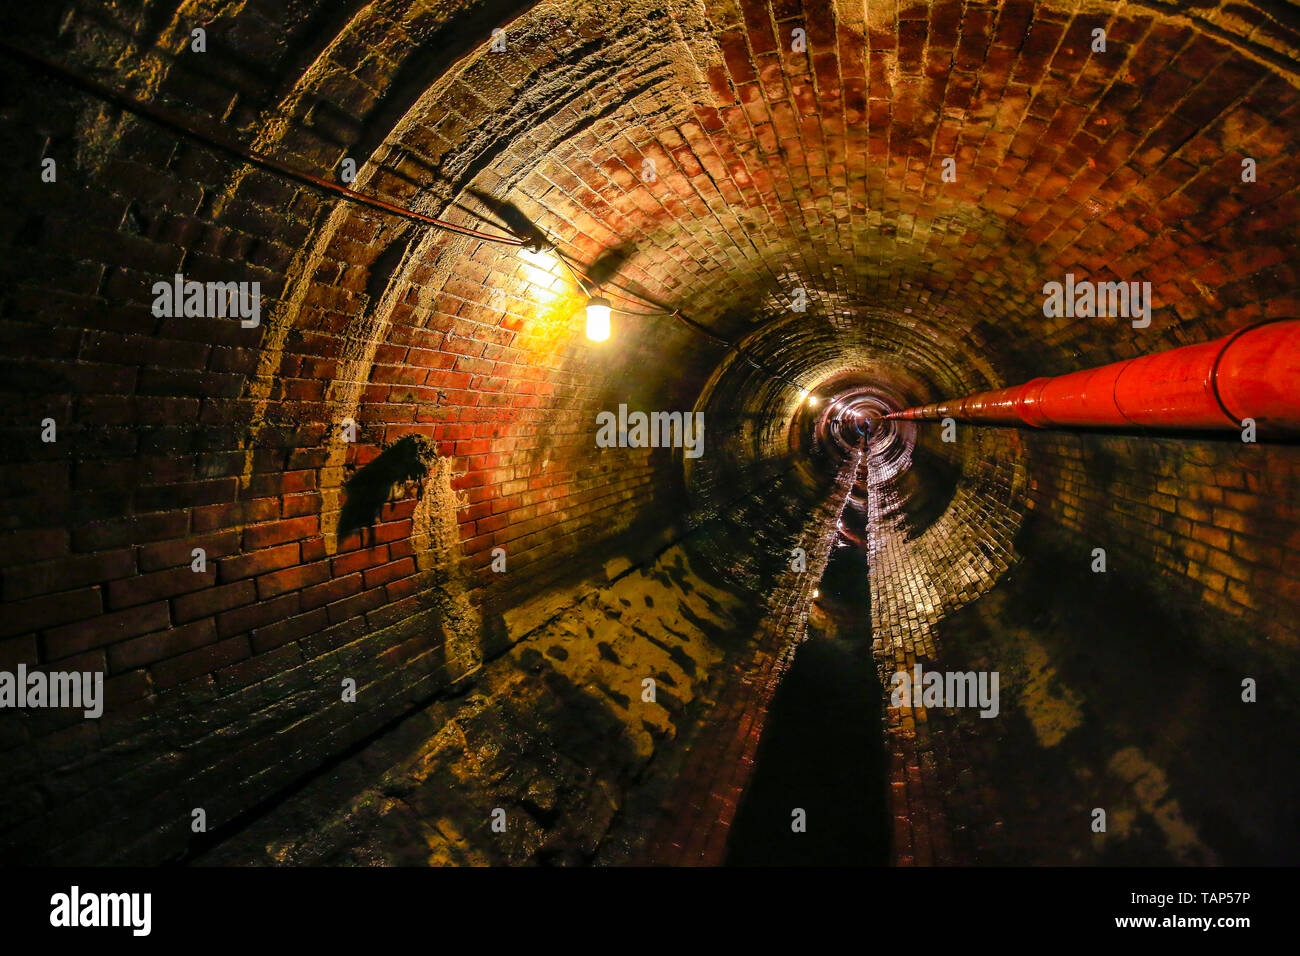 29.04.2019, , North Rhine-Westphalia, Germany - Theme picture sewer network transmission, old, brick sewer in need of renovation. Canal transmission m - Stock Image